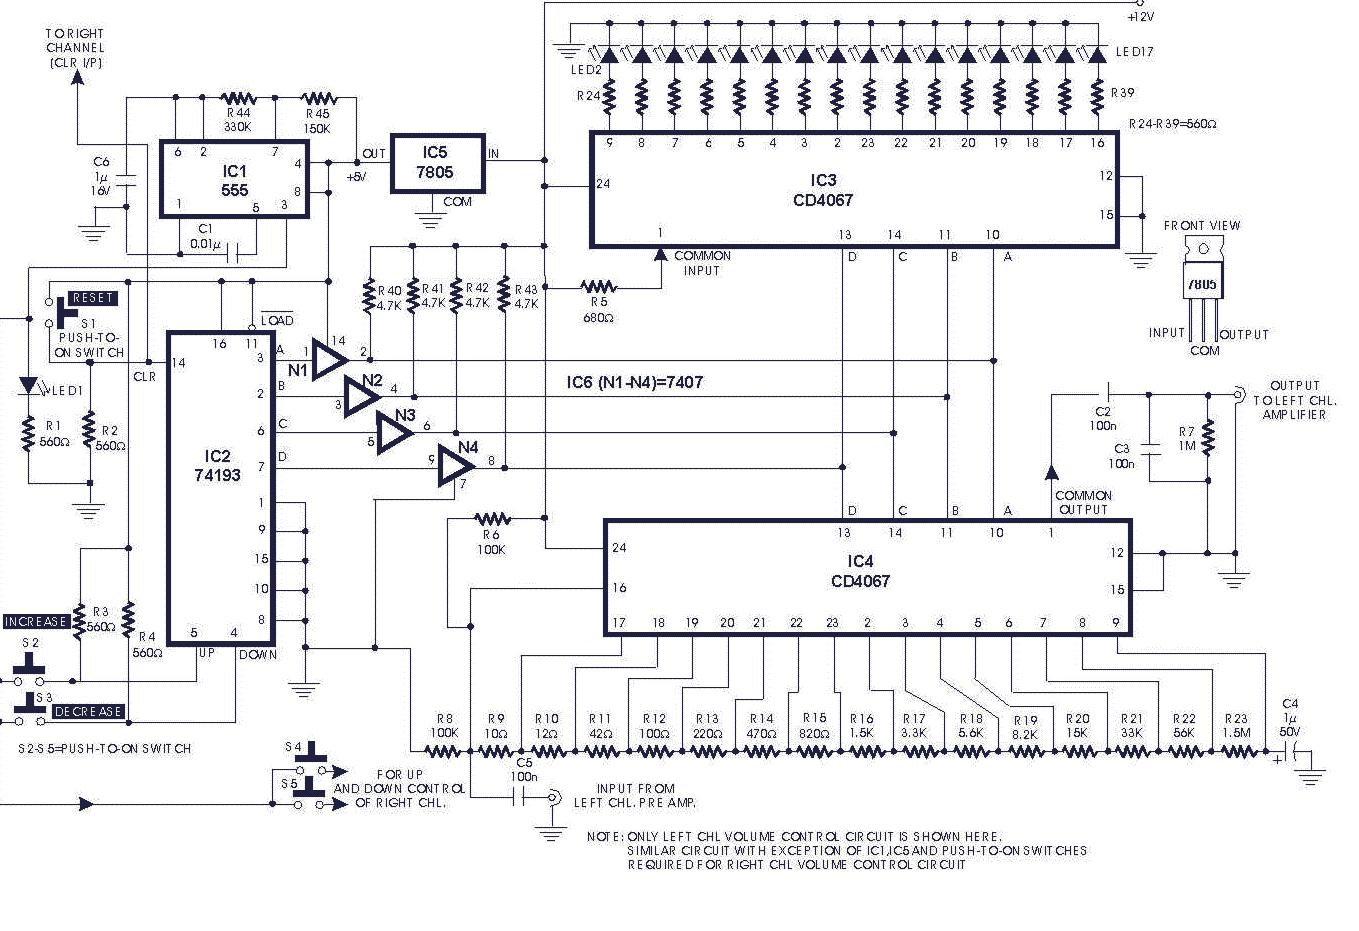 Digital Volume Control Circuit Schematic Switch Diagram Epiphonelespaulstudiowiring Les Paul Studio Wiring Http Www Diagrams Schematics Electronic Rh Diy Projects Com Infrared Remote